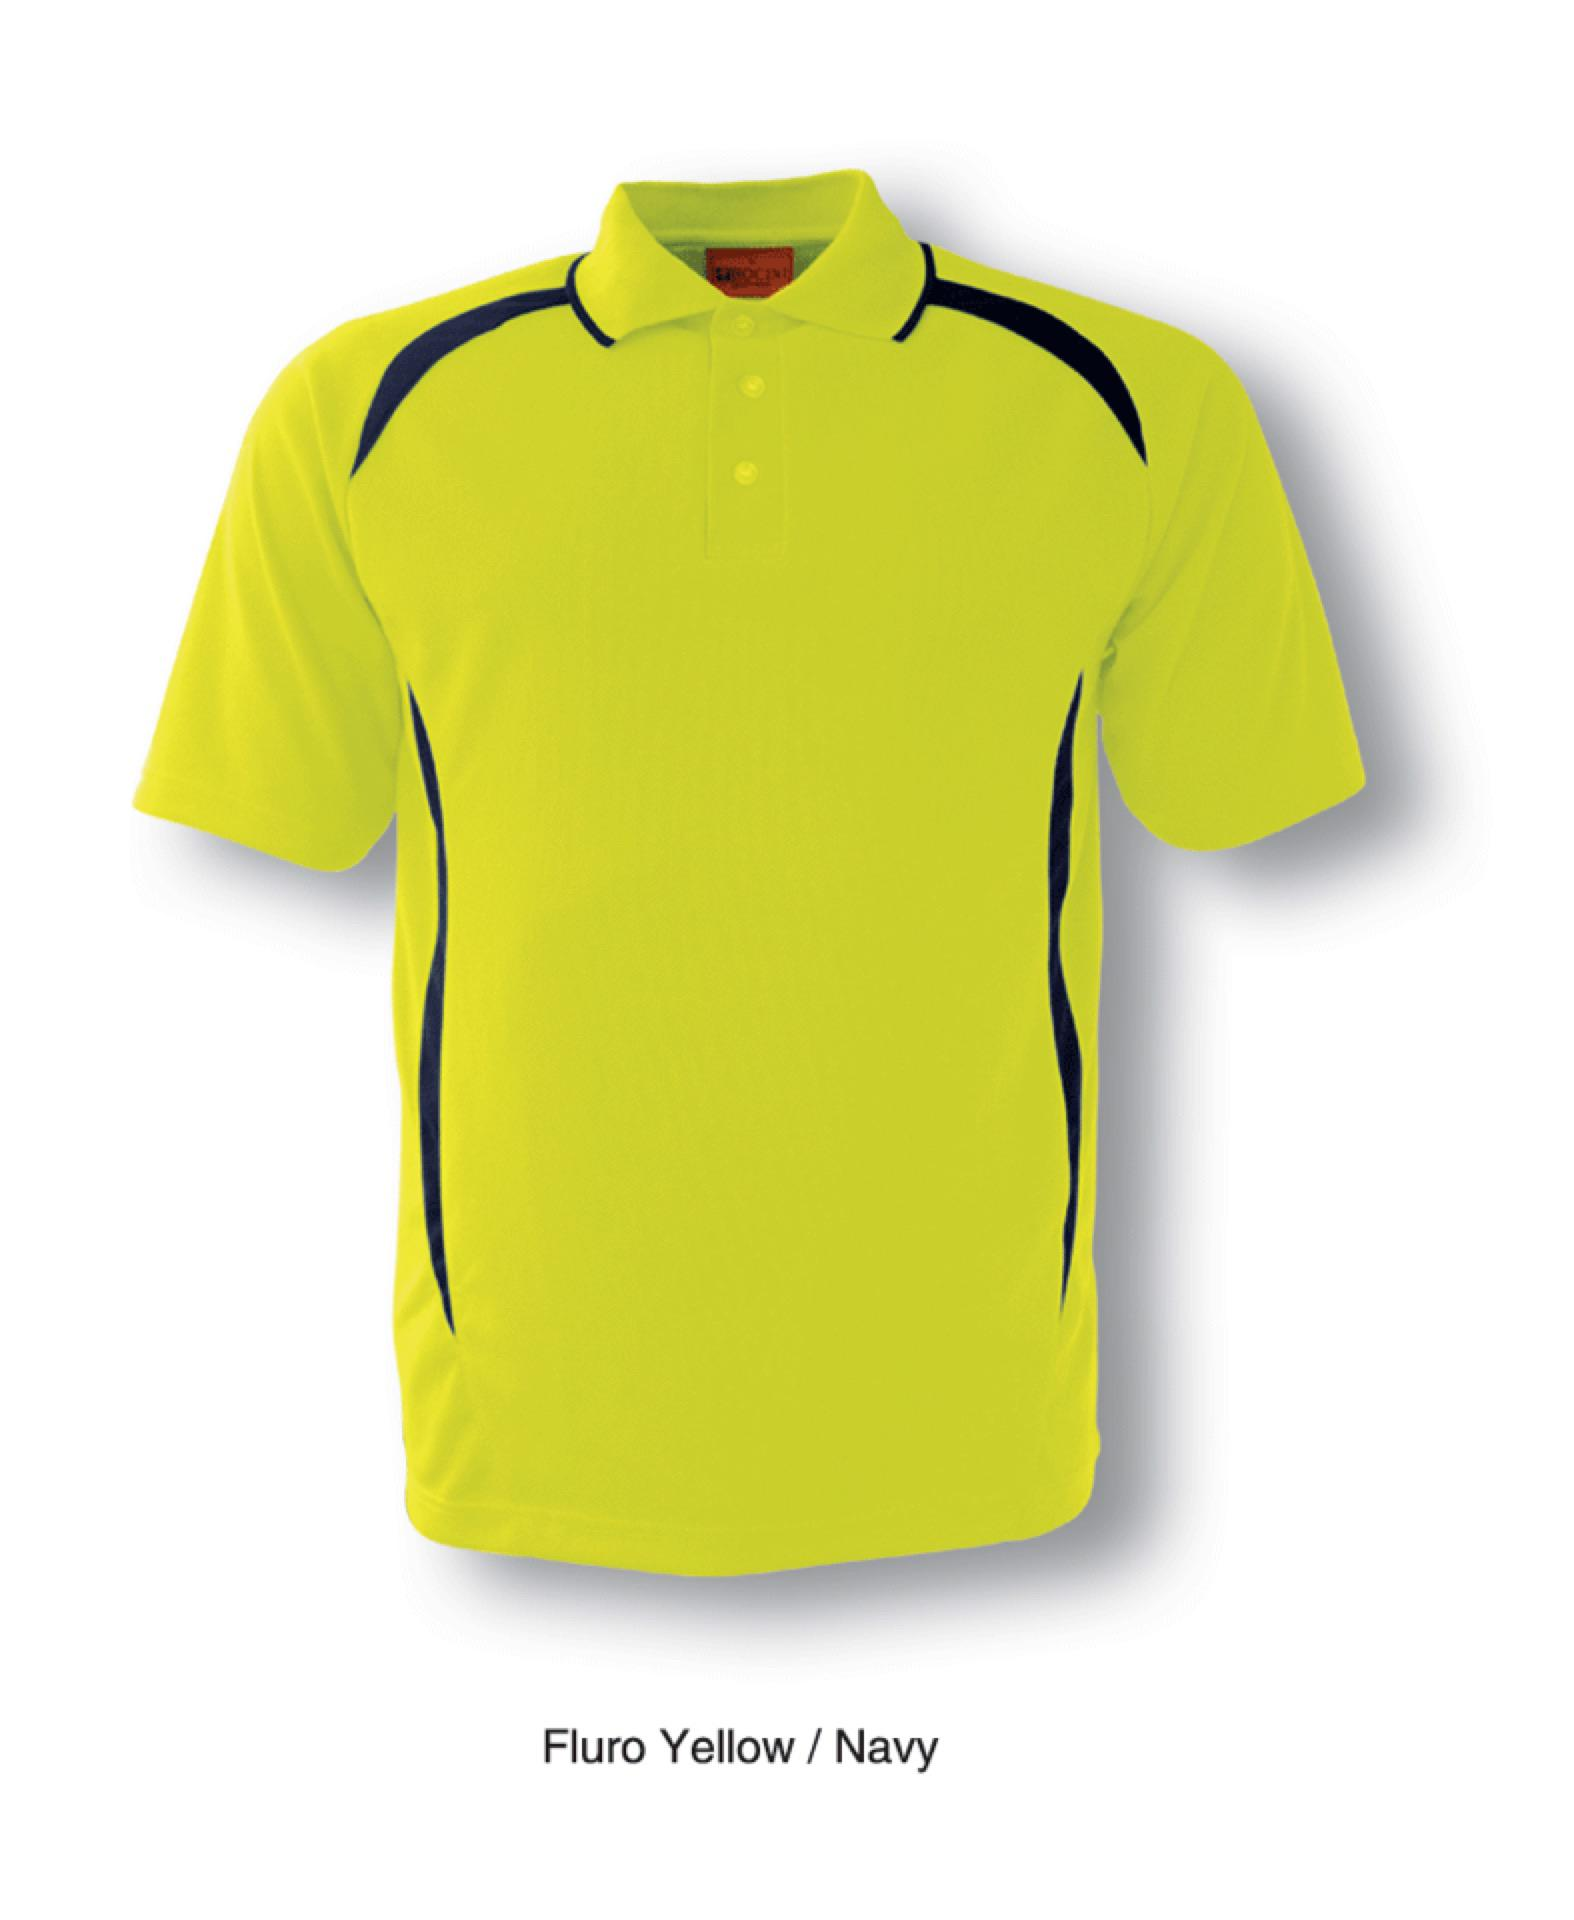 0f20be36f UNISEX ADULTS HI-VIS SAFETY STYLE POLO